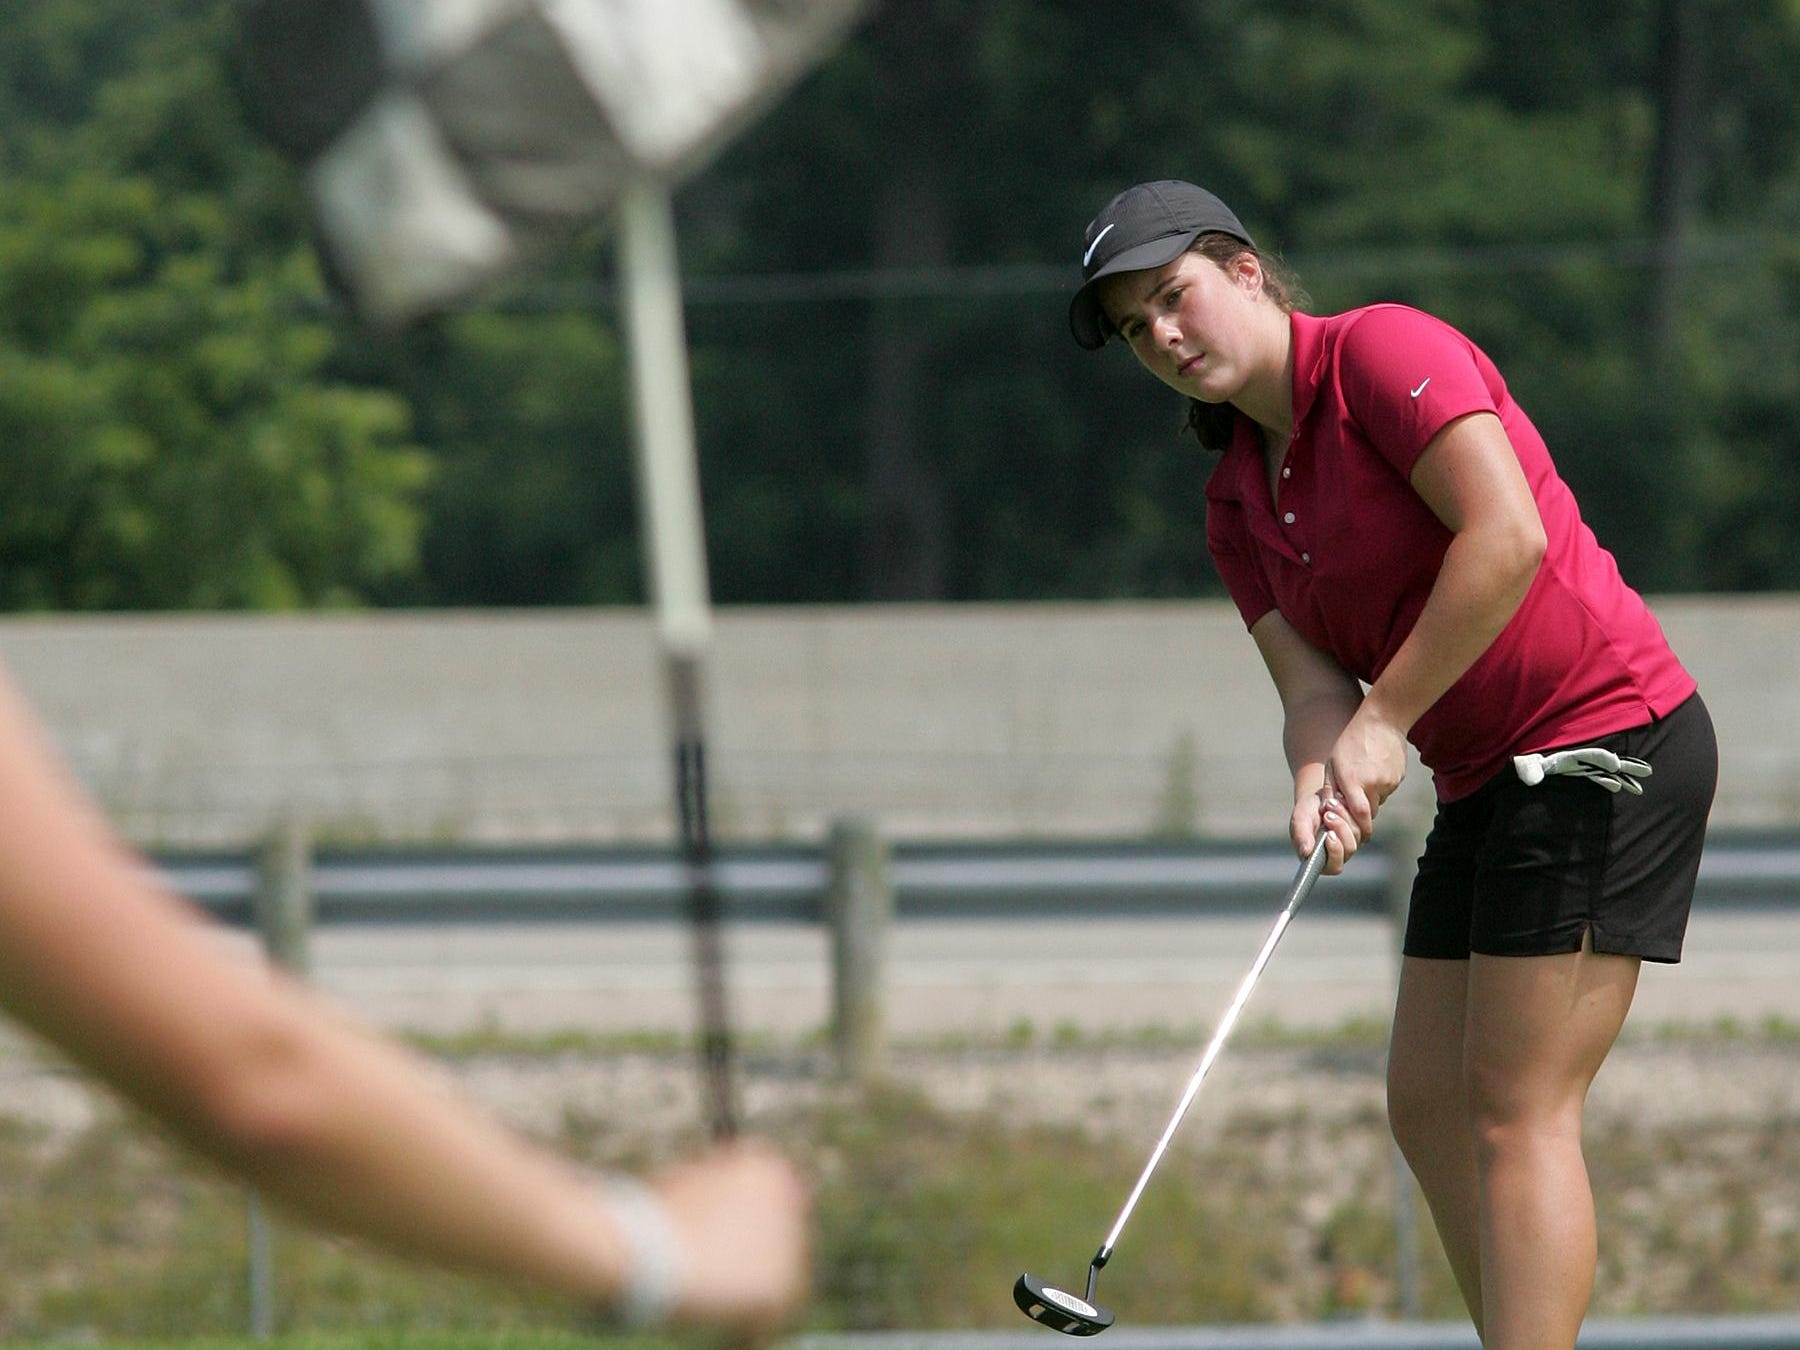 Heath senior Annie Newhouse putts on the 17th green during Monday's Licking County Junior Golf Association match at Raccoon International. Newhouse shot 82 to win the girls match.